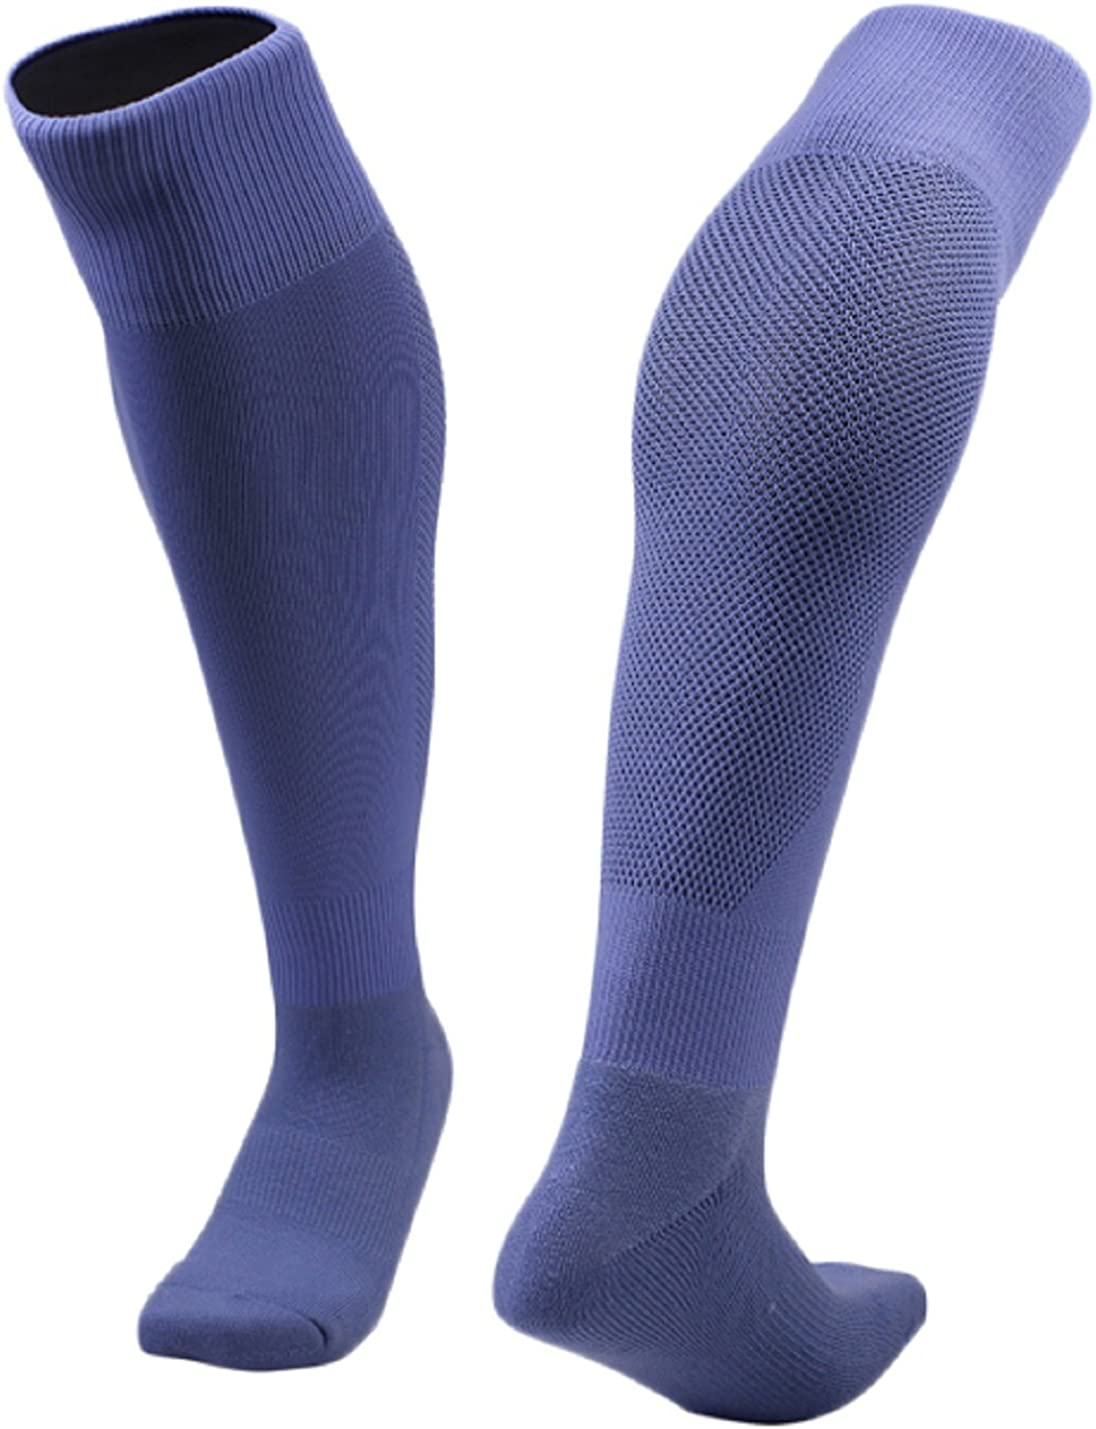 Lovely Annie Women's 1 Max 75% OFF Pair Knee High for Sports Baseball Socks Max 50% OFF